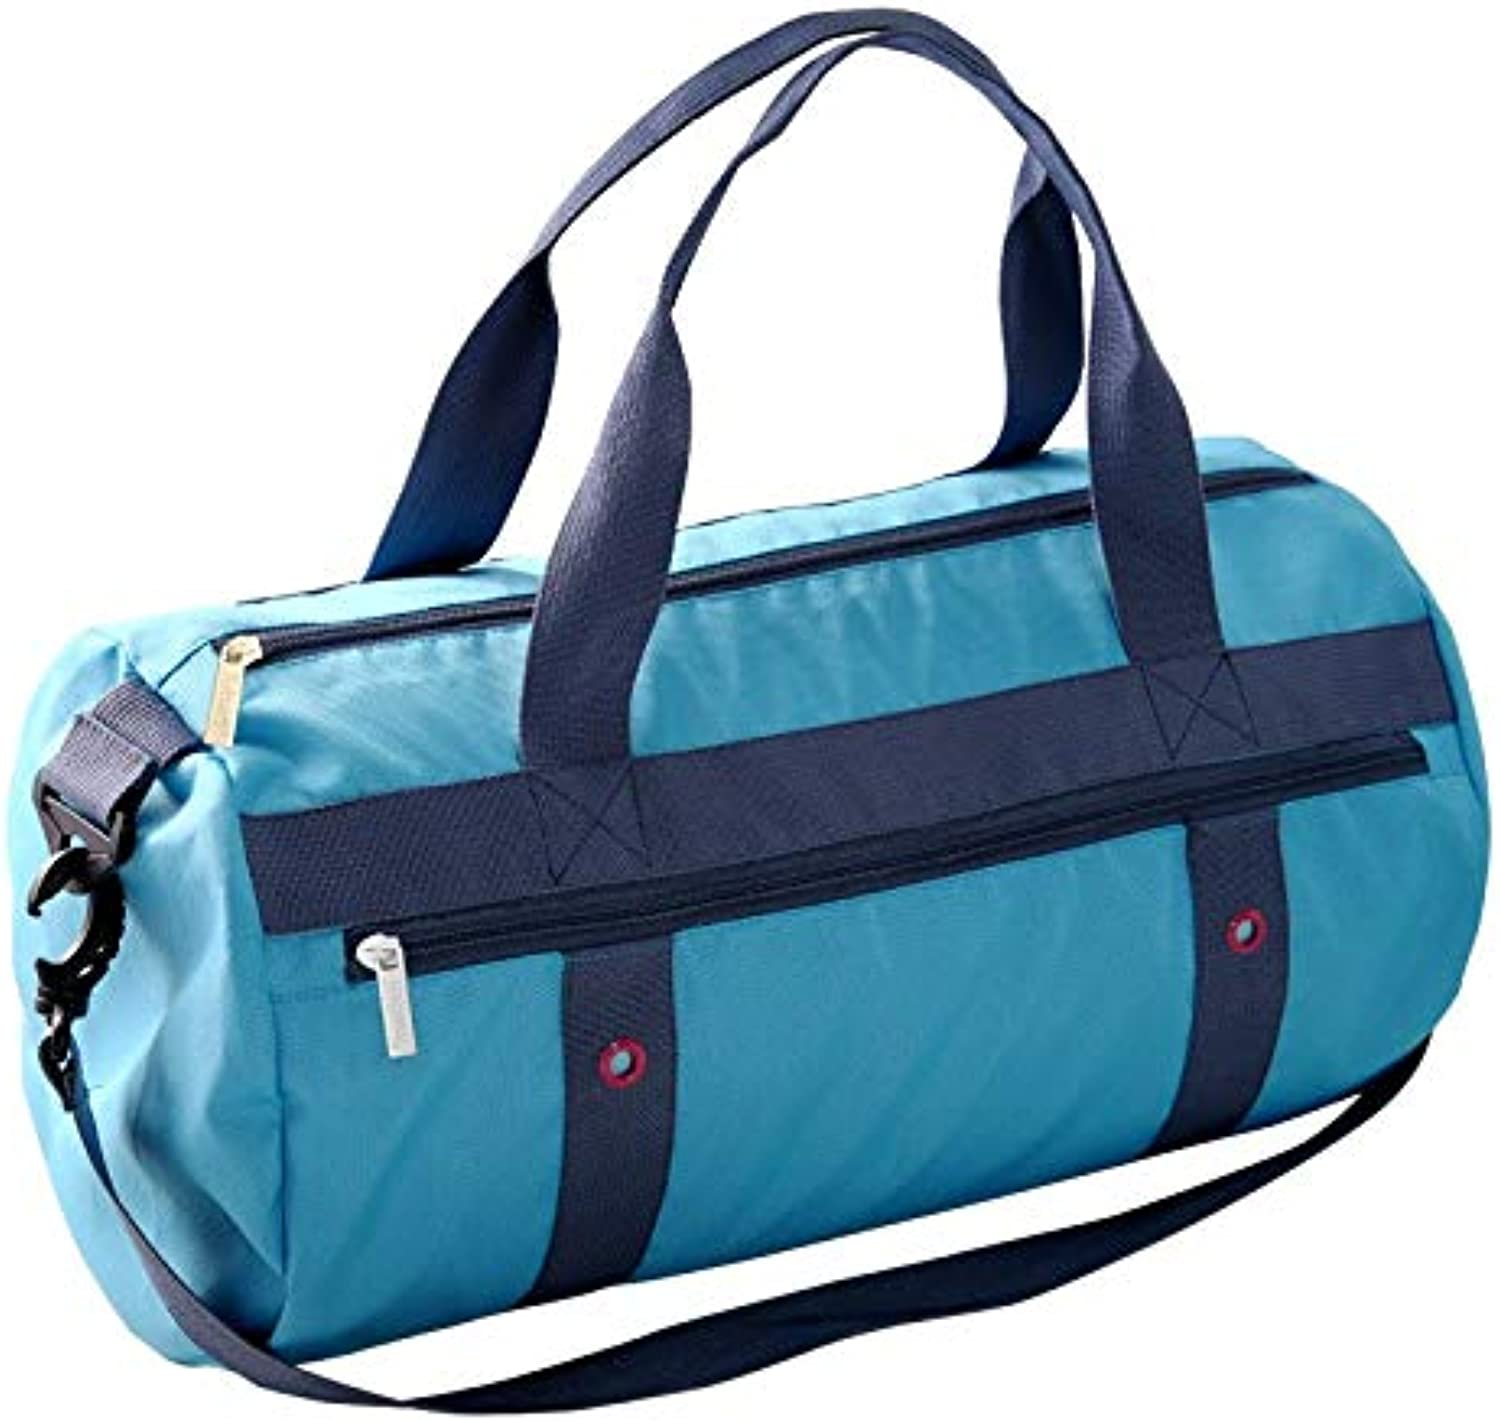 Langlebige Anti-Friction Beach Swimming Gym wasserdichte Tasche Kapazitt Outdoor Sports Combo Dry Wet Depart Rucksack Travel Handtasche 45x25x25cm blau